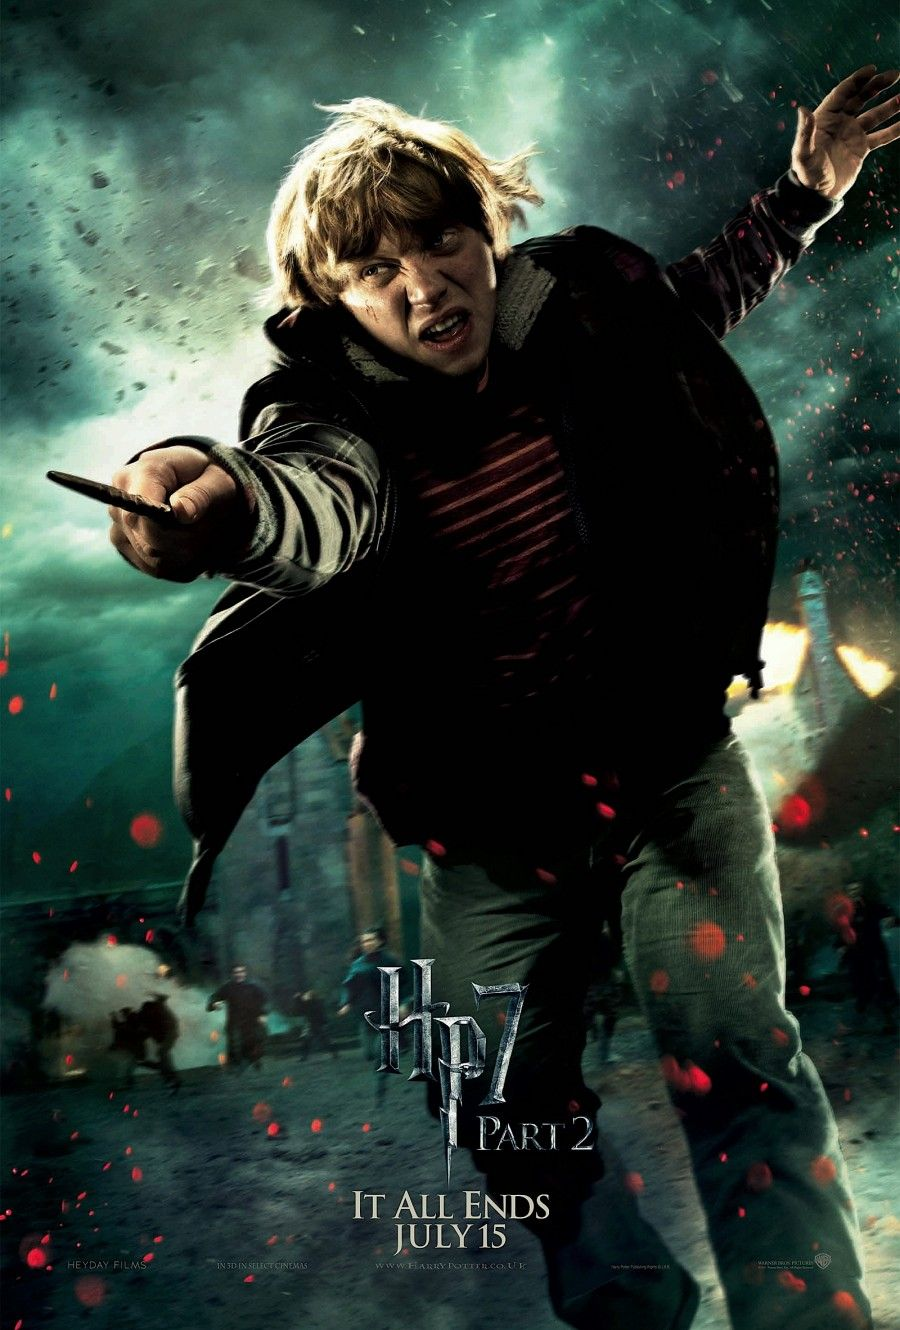 Ron Weasley Rupert Grint In Harry Potter And The Deathly Hallows